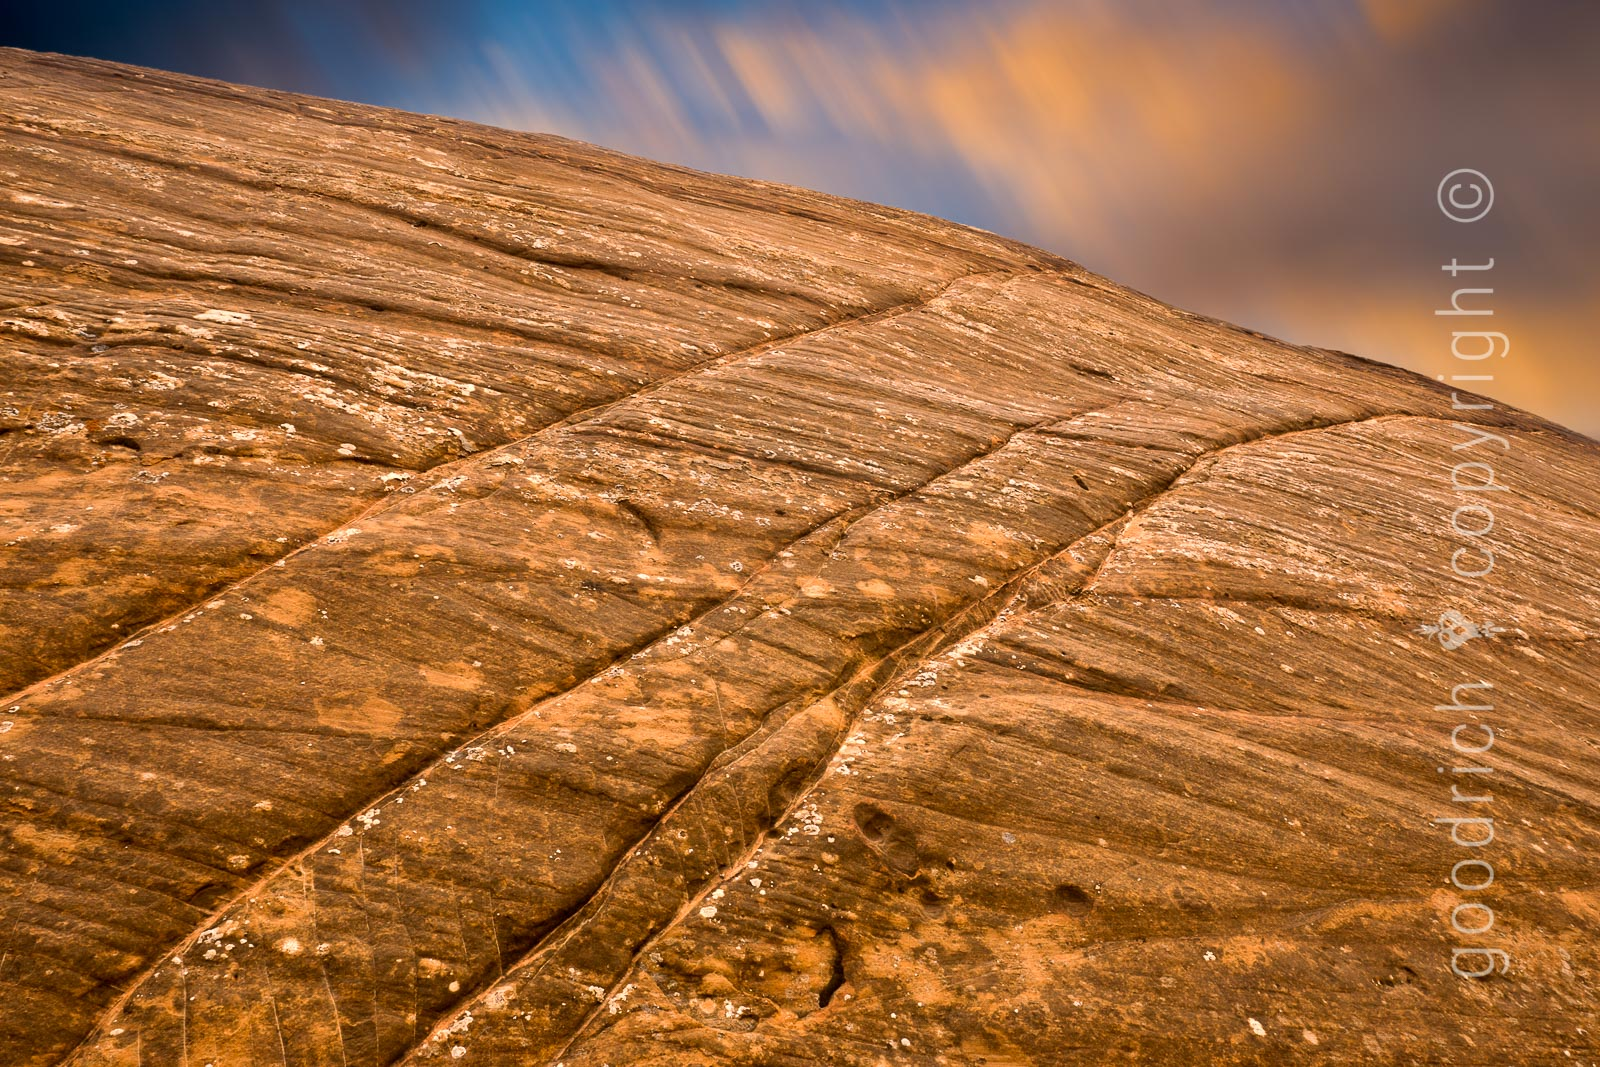 photographic filters - escalante landscape by jay goodrich